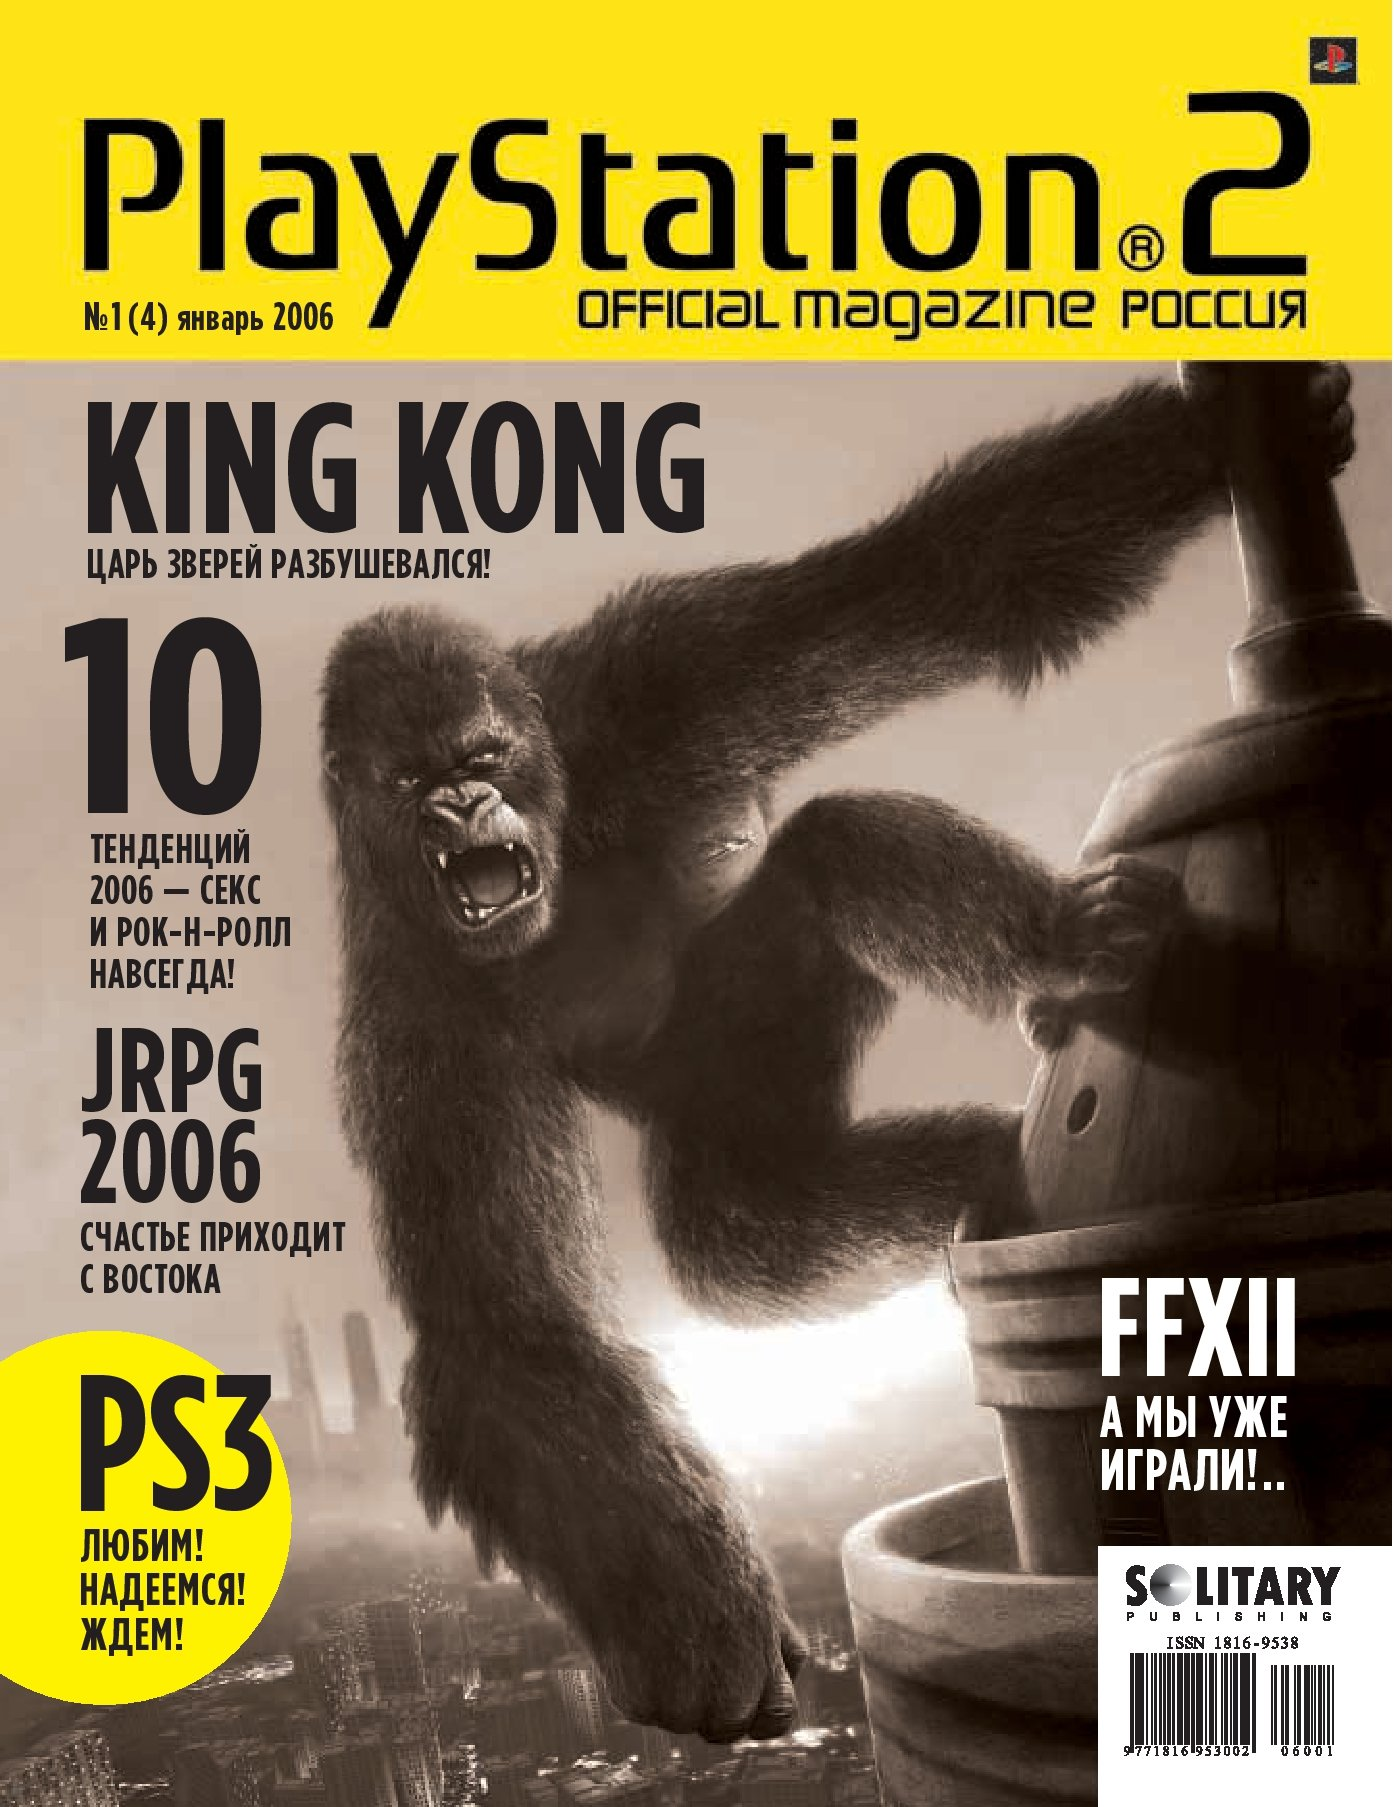 Playstation 2 Official Magazine (Russia) Issue 04 - Jan. '06